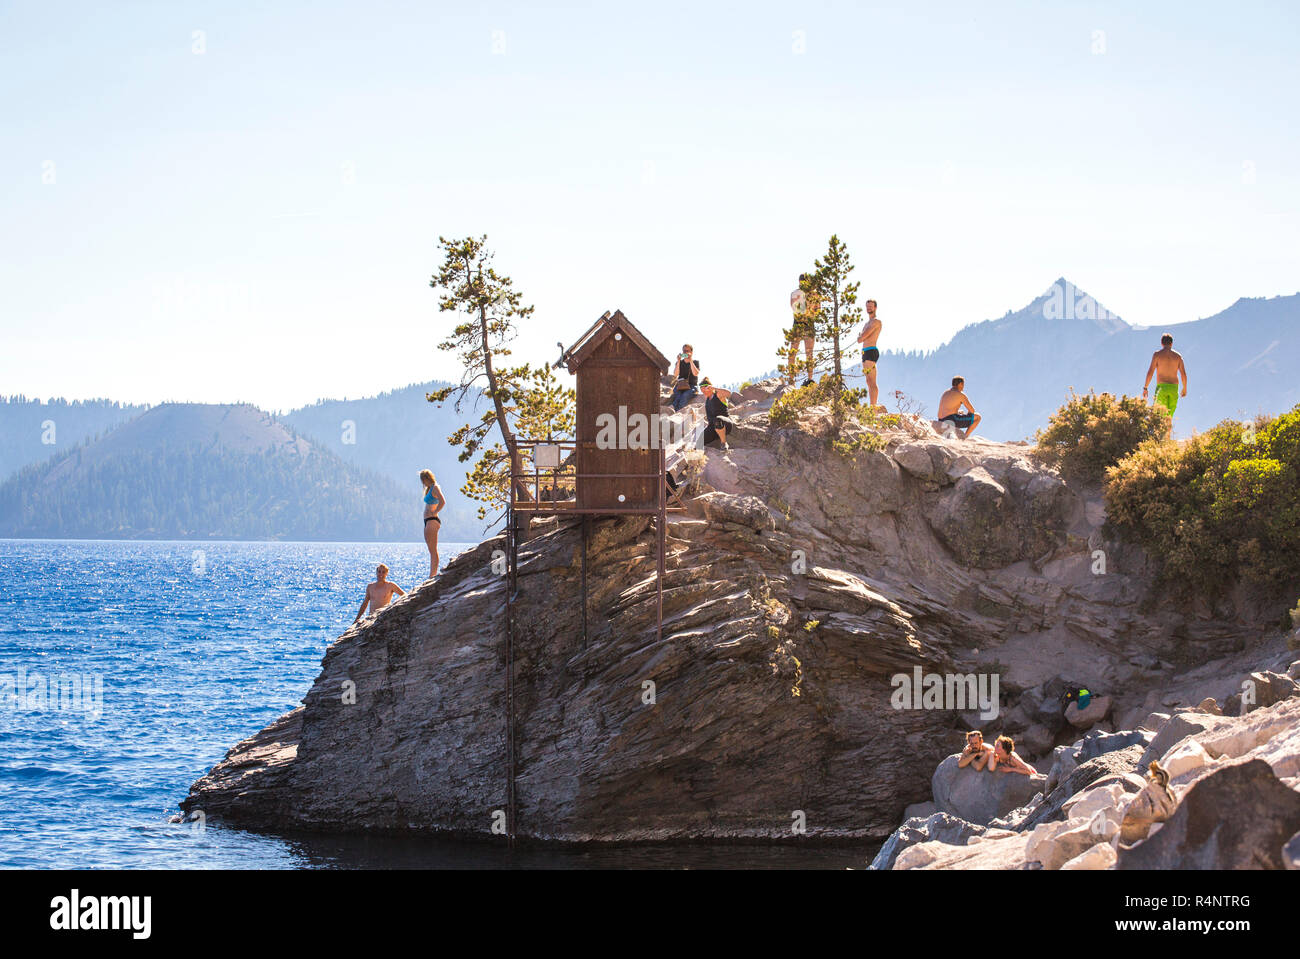 Swimmers wait on a rock outcrop surrounded by a big blue lake on sunny summer day, Crater Lake, Oregon, USA Stock Photo